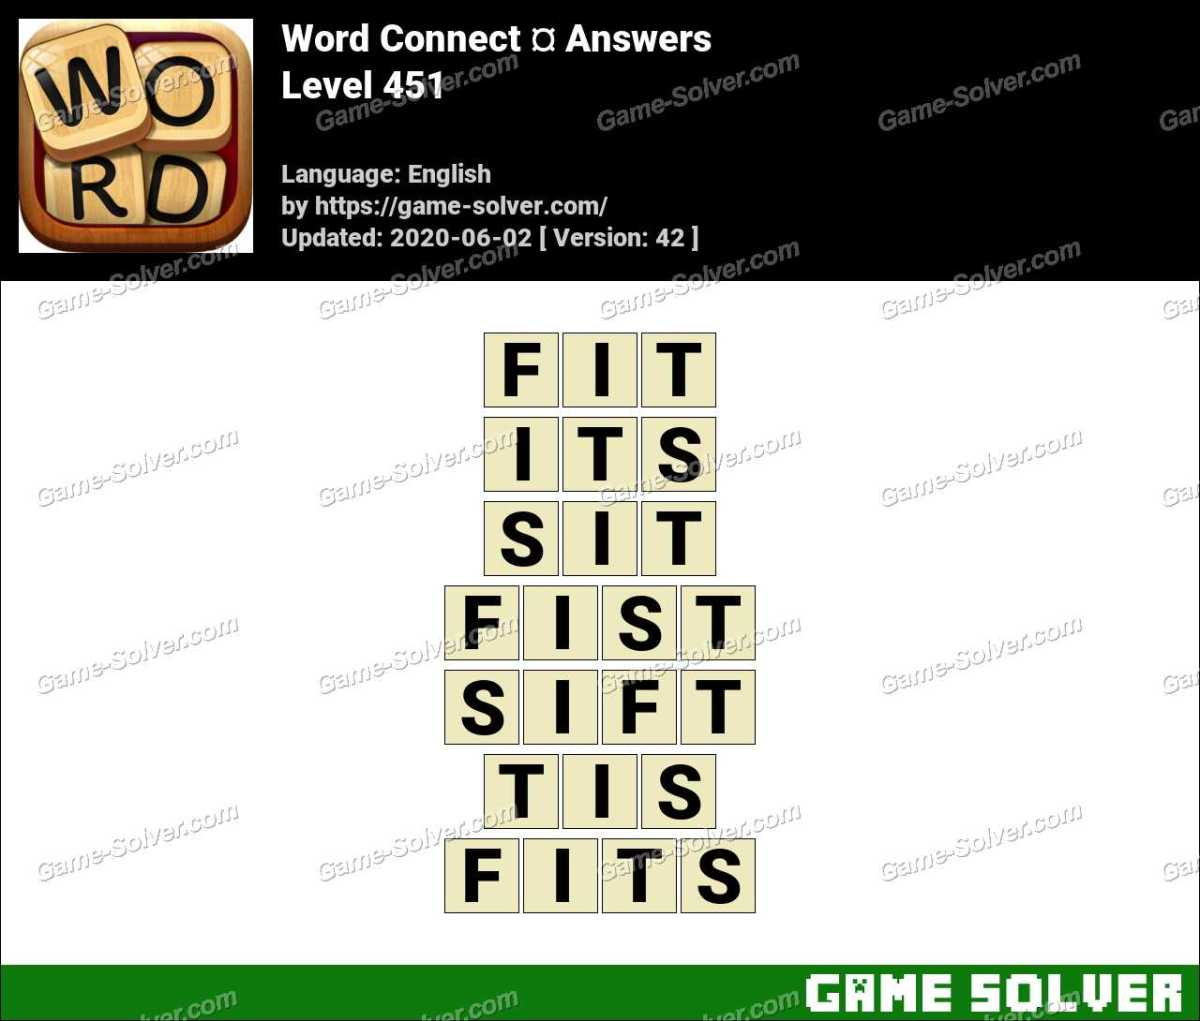 Word Connect Level 451 Answers